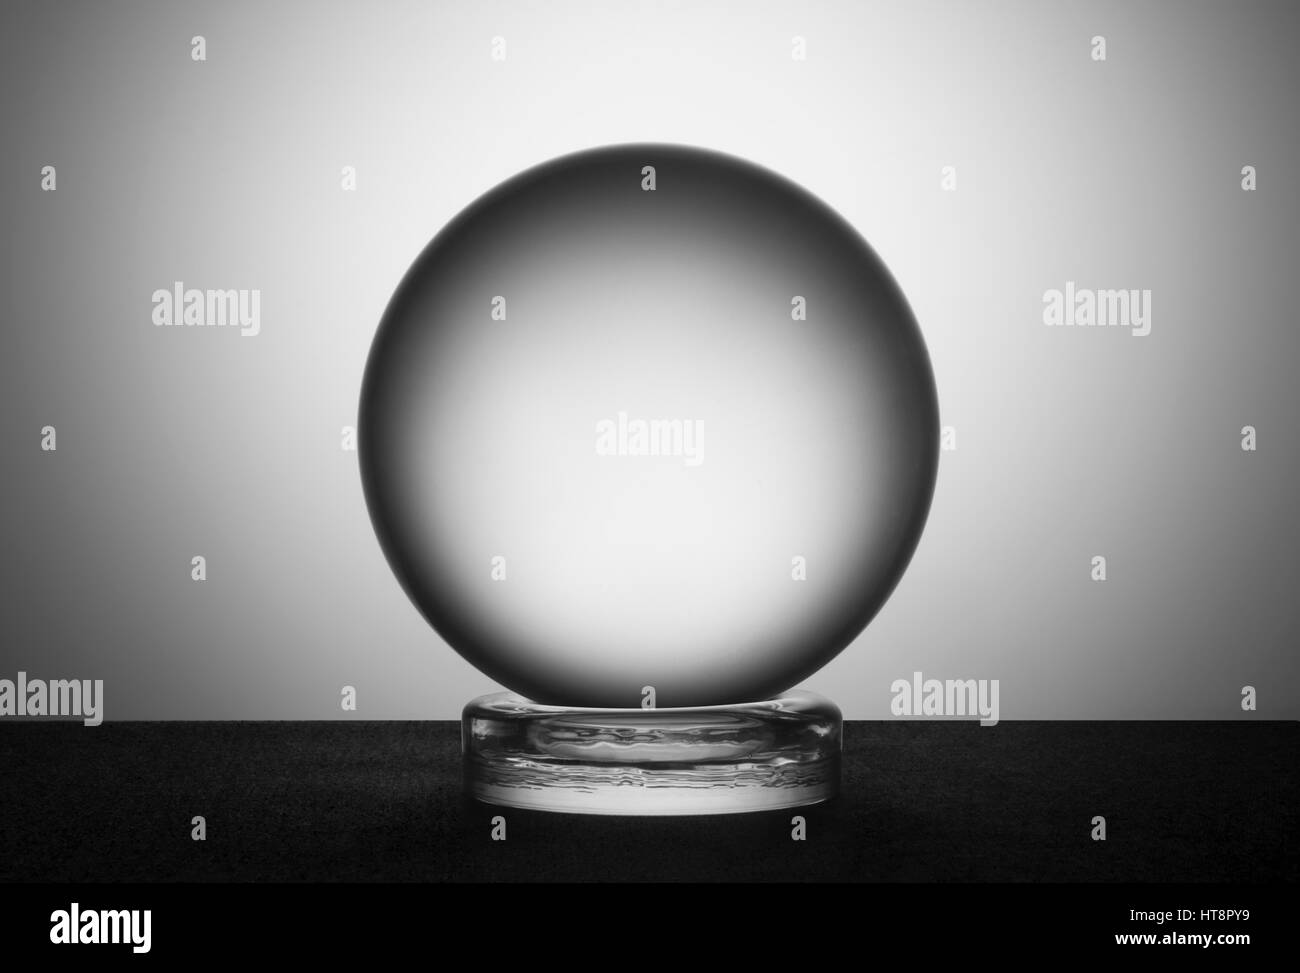 A large crystal ball against a plain background - Stock Image